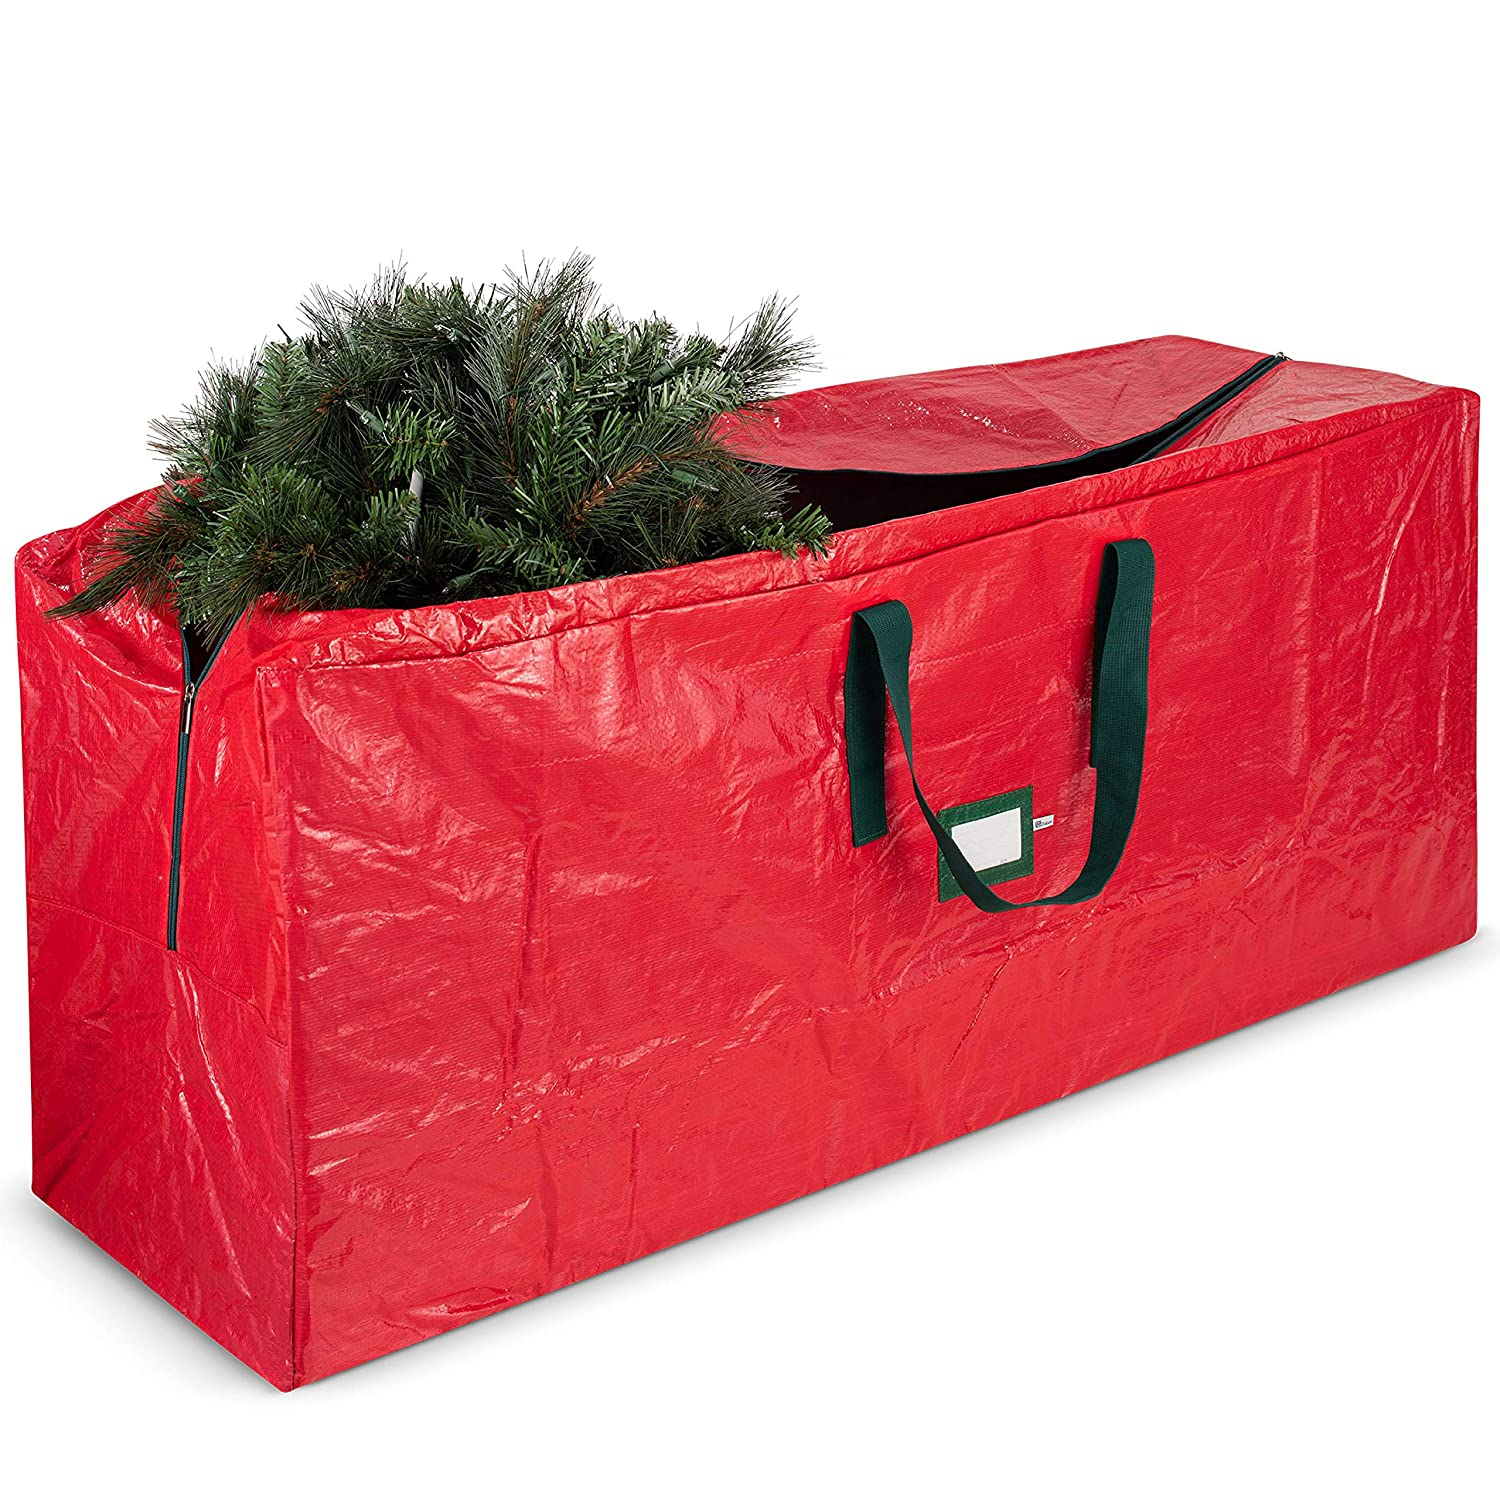 Christmas Tree Bags.Artificial Christmas Tree Storage Bag Fits Up To 7 Foot Holiday Xmas Disassembled Trees With Durable Reinforced Handles Dual Zipper Waterproof